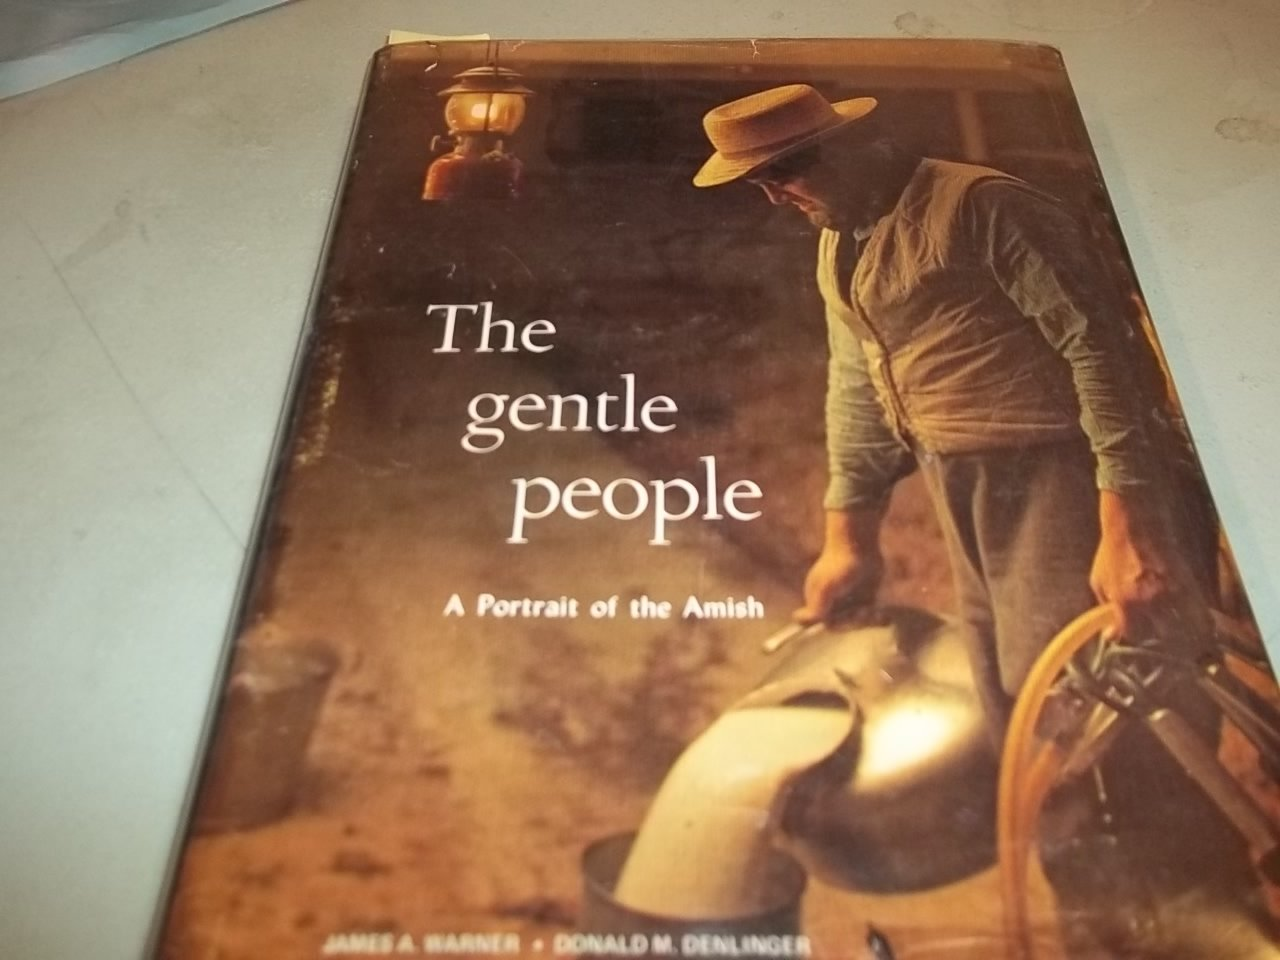 The Gentle People: A Portrait of the Amish